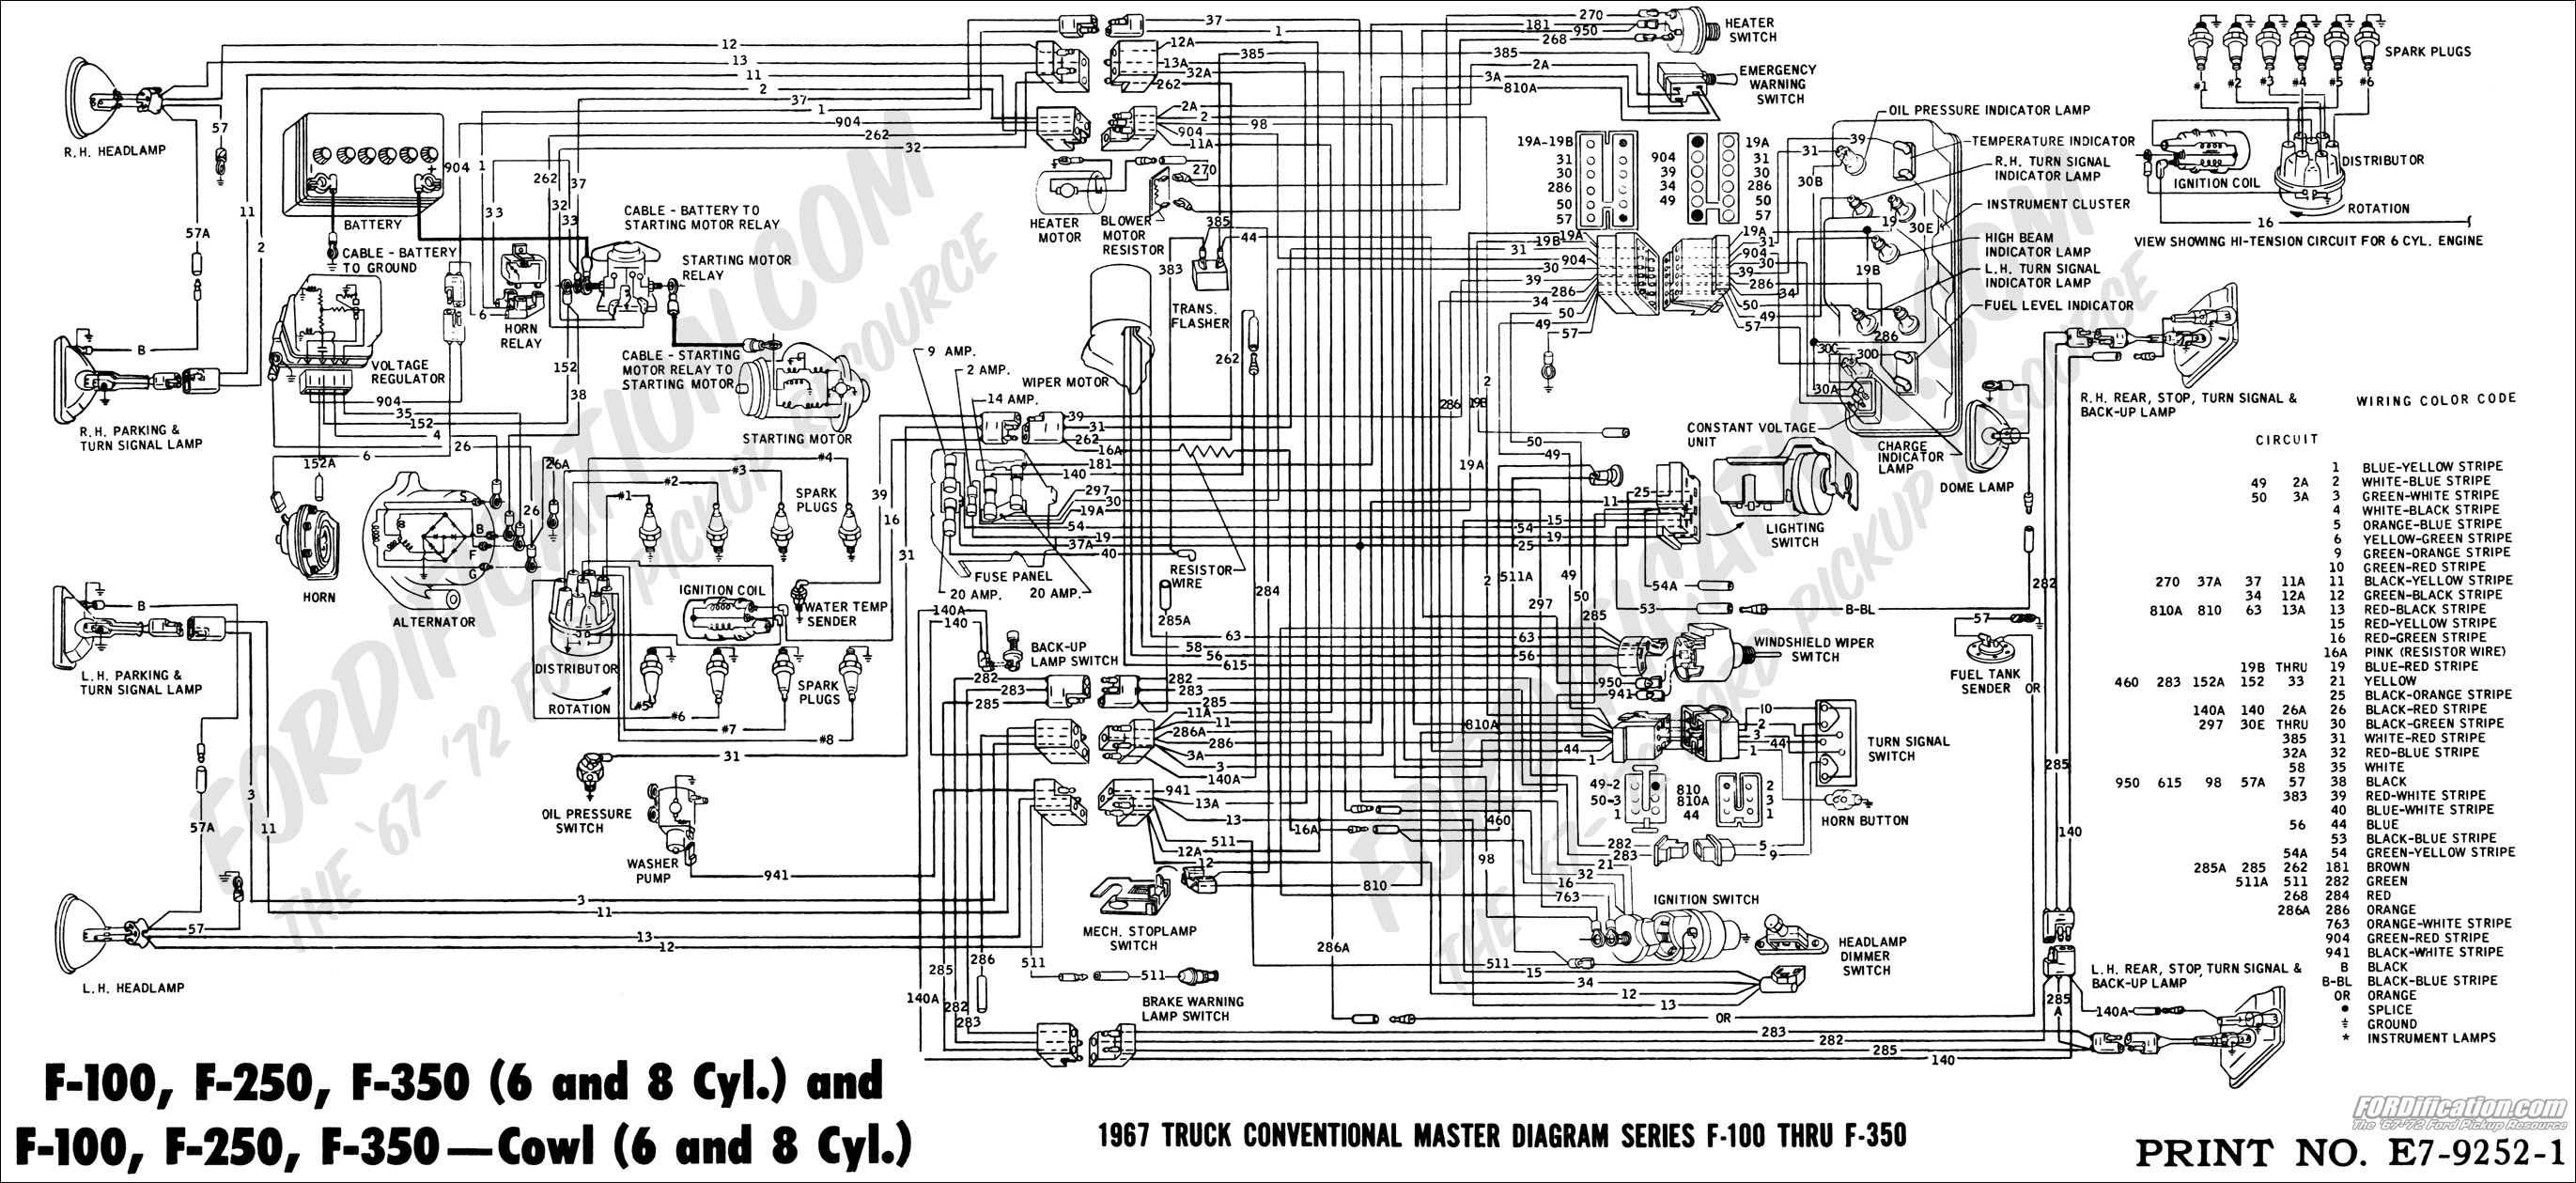 ford 1967 truck wiring diagram wiring diagram 1995 ford econoline van fuse box diagram 1967 ford econoline van wiring diagram #2